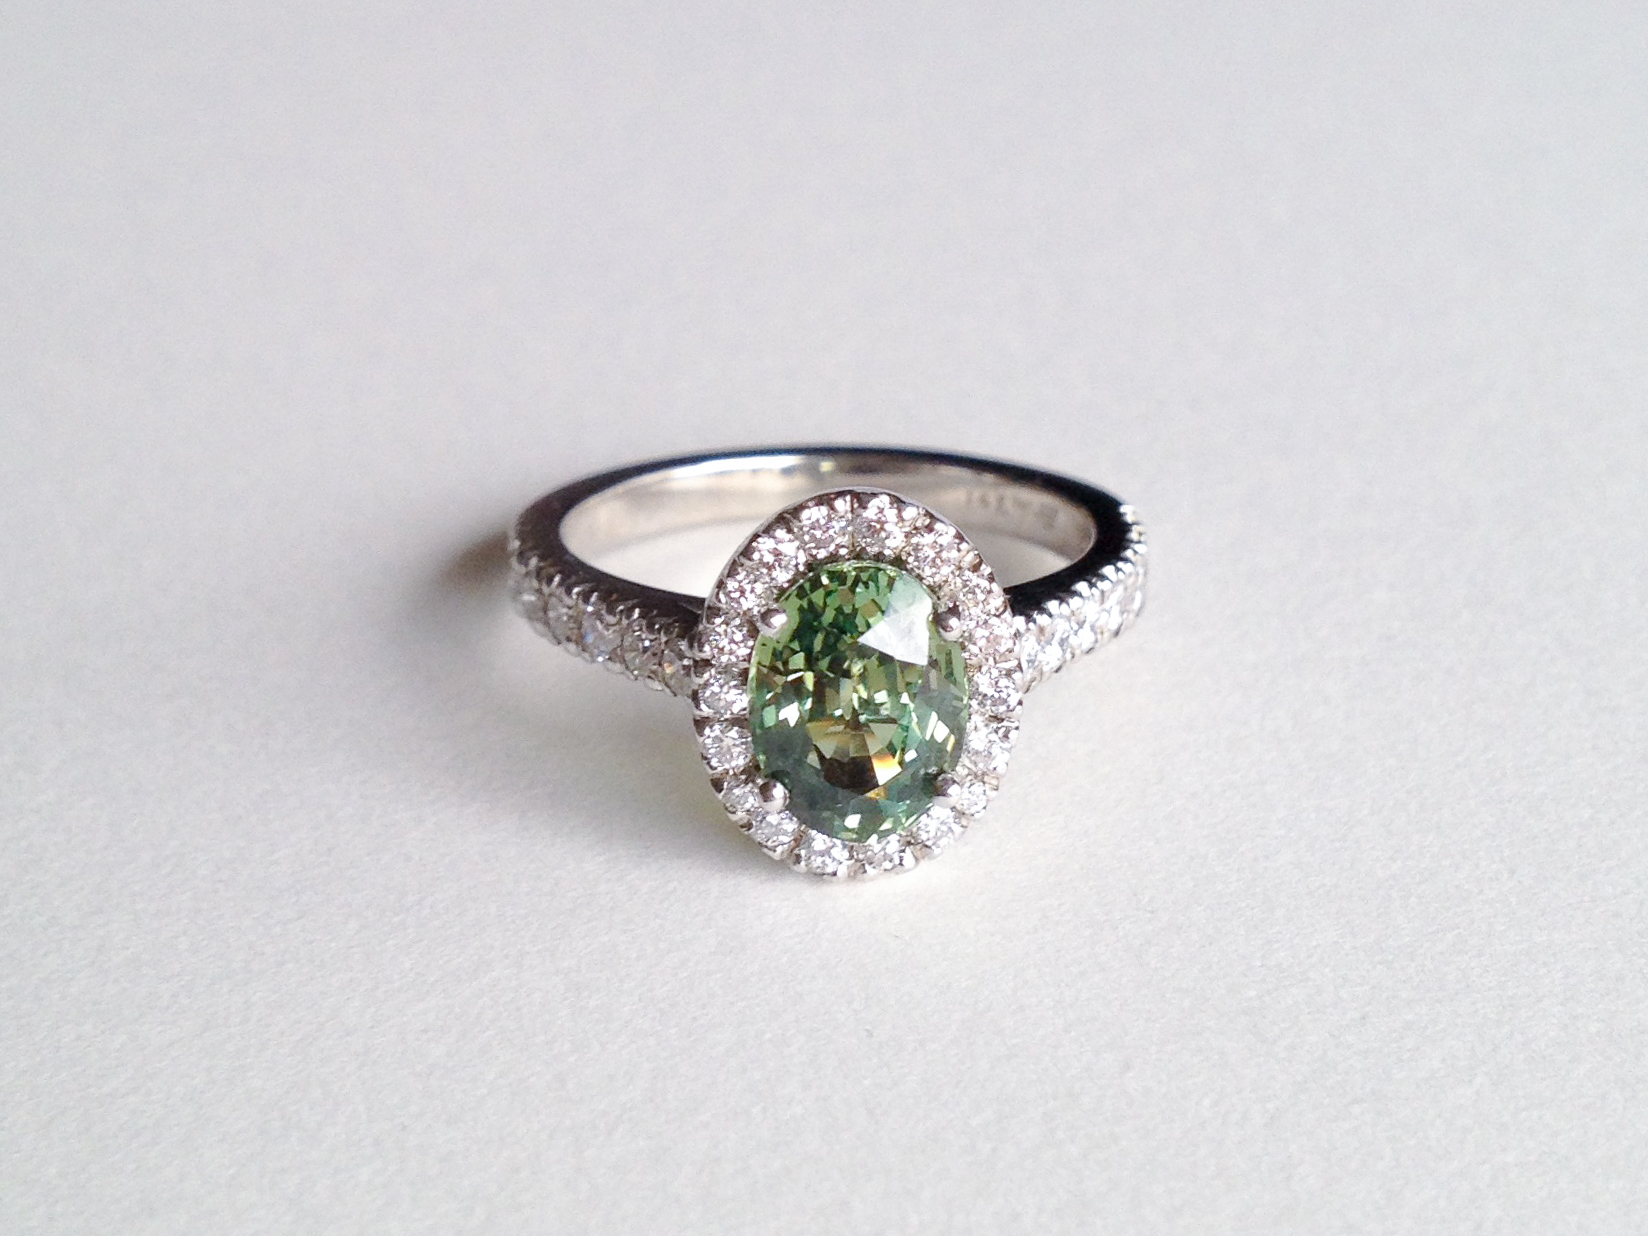 CLAIRE Engagement Ring:  ethically-sourced oval green sapphire, pavé diamonds, 18k white gold.